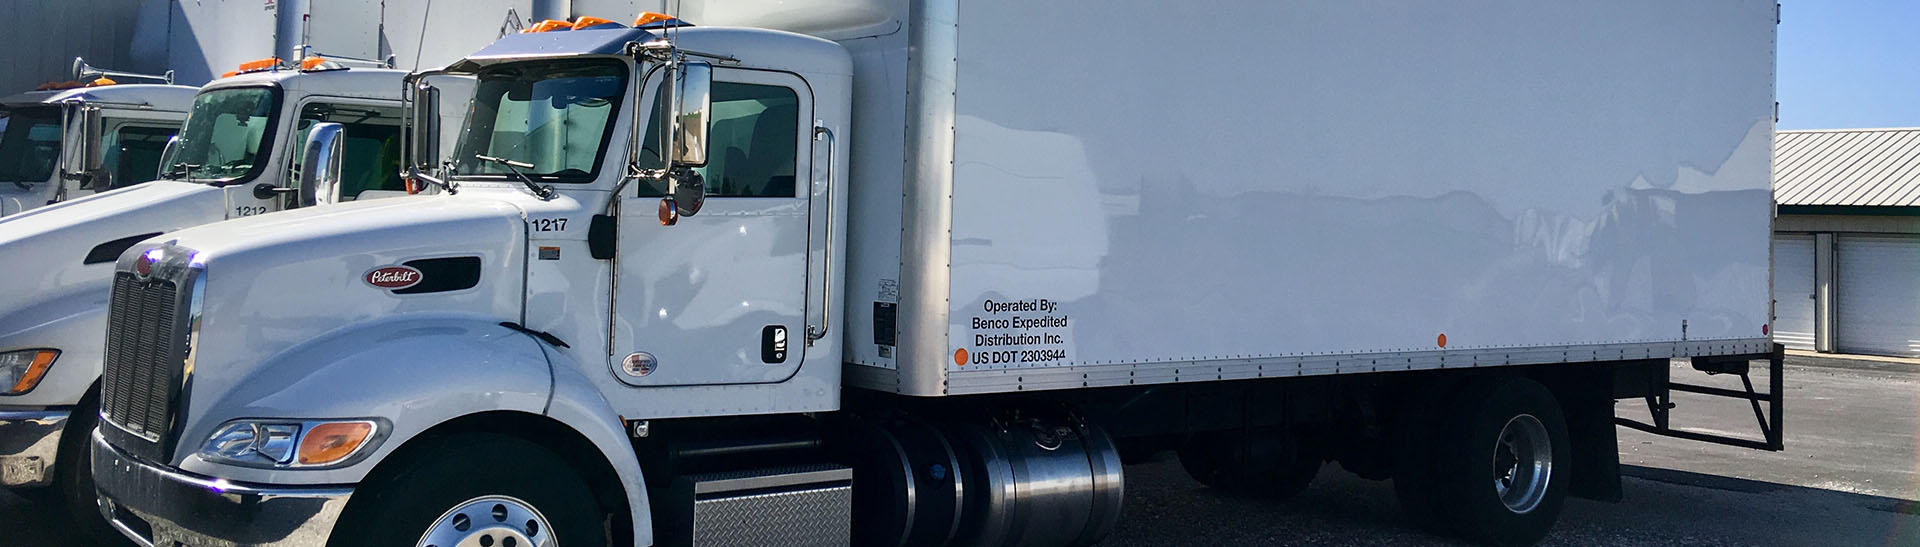 Columbus IN Freight Forwarding Services, Courier Service and Trucking Company